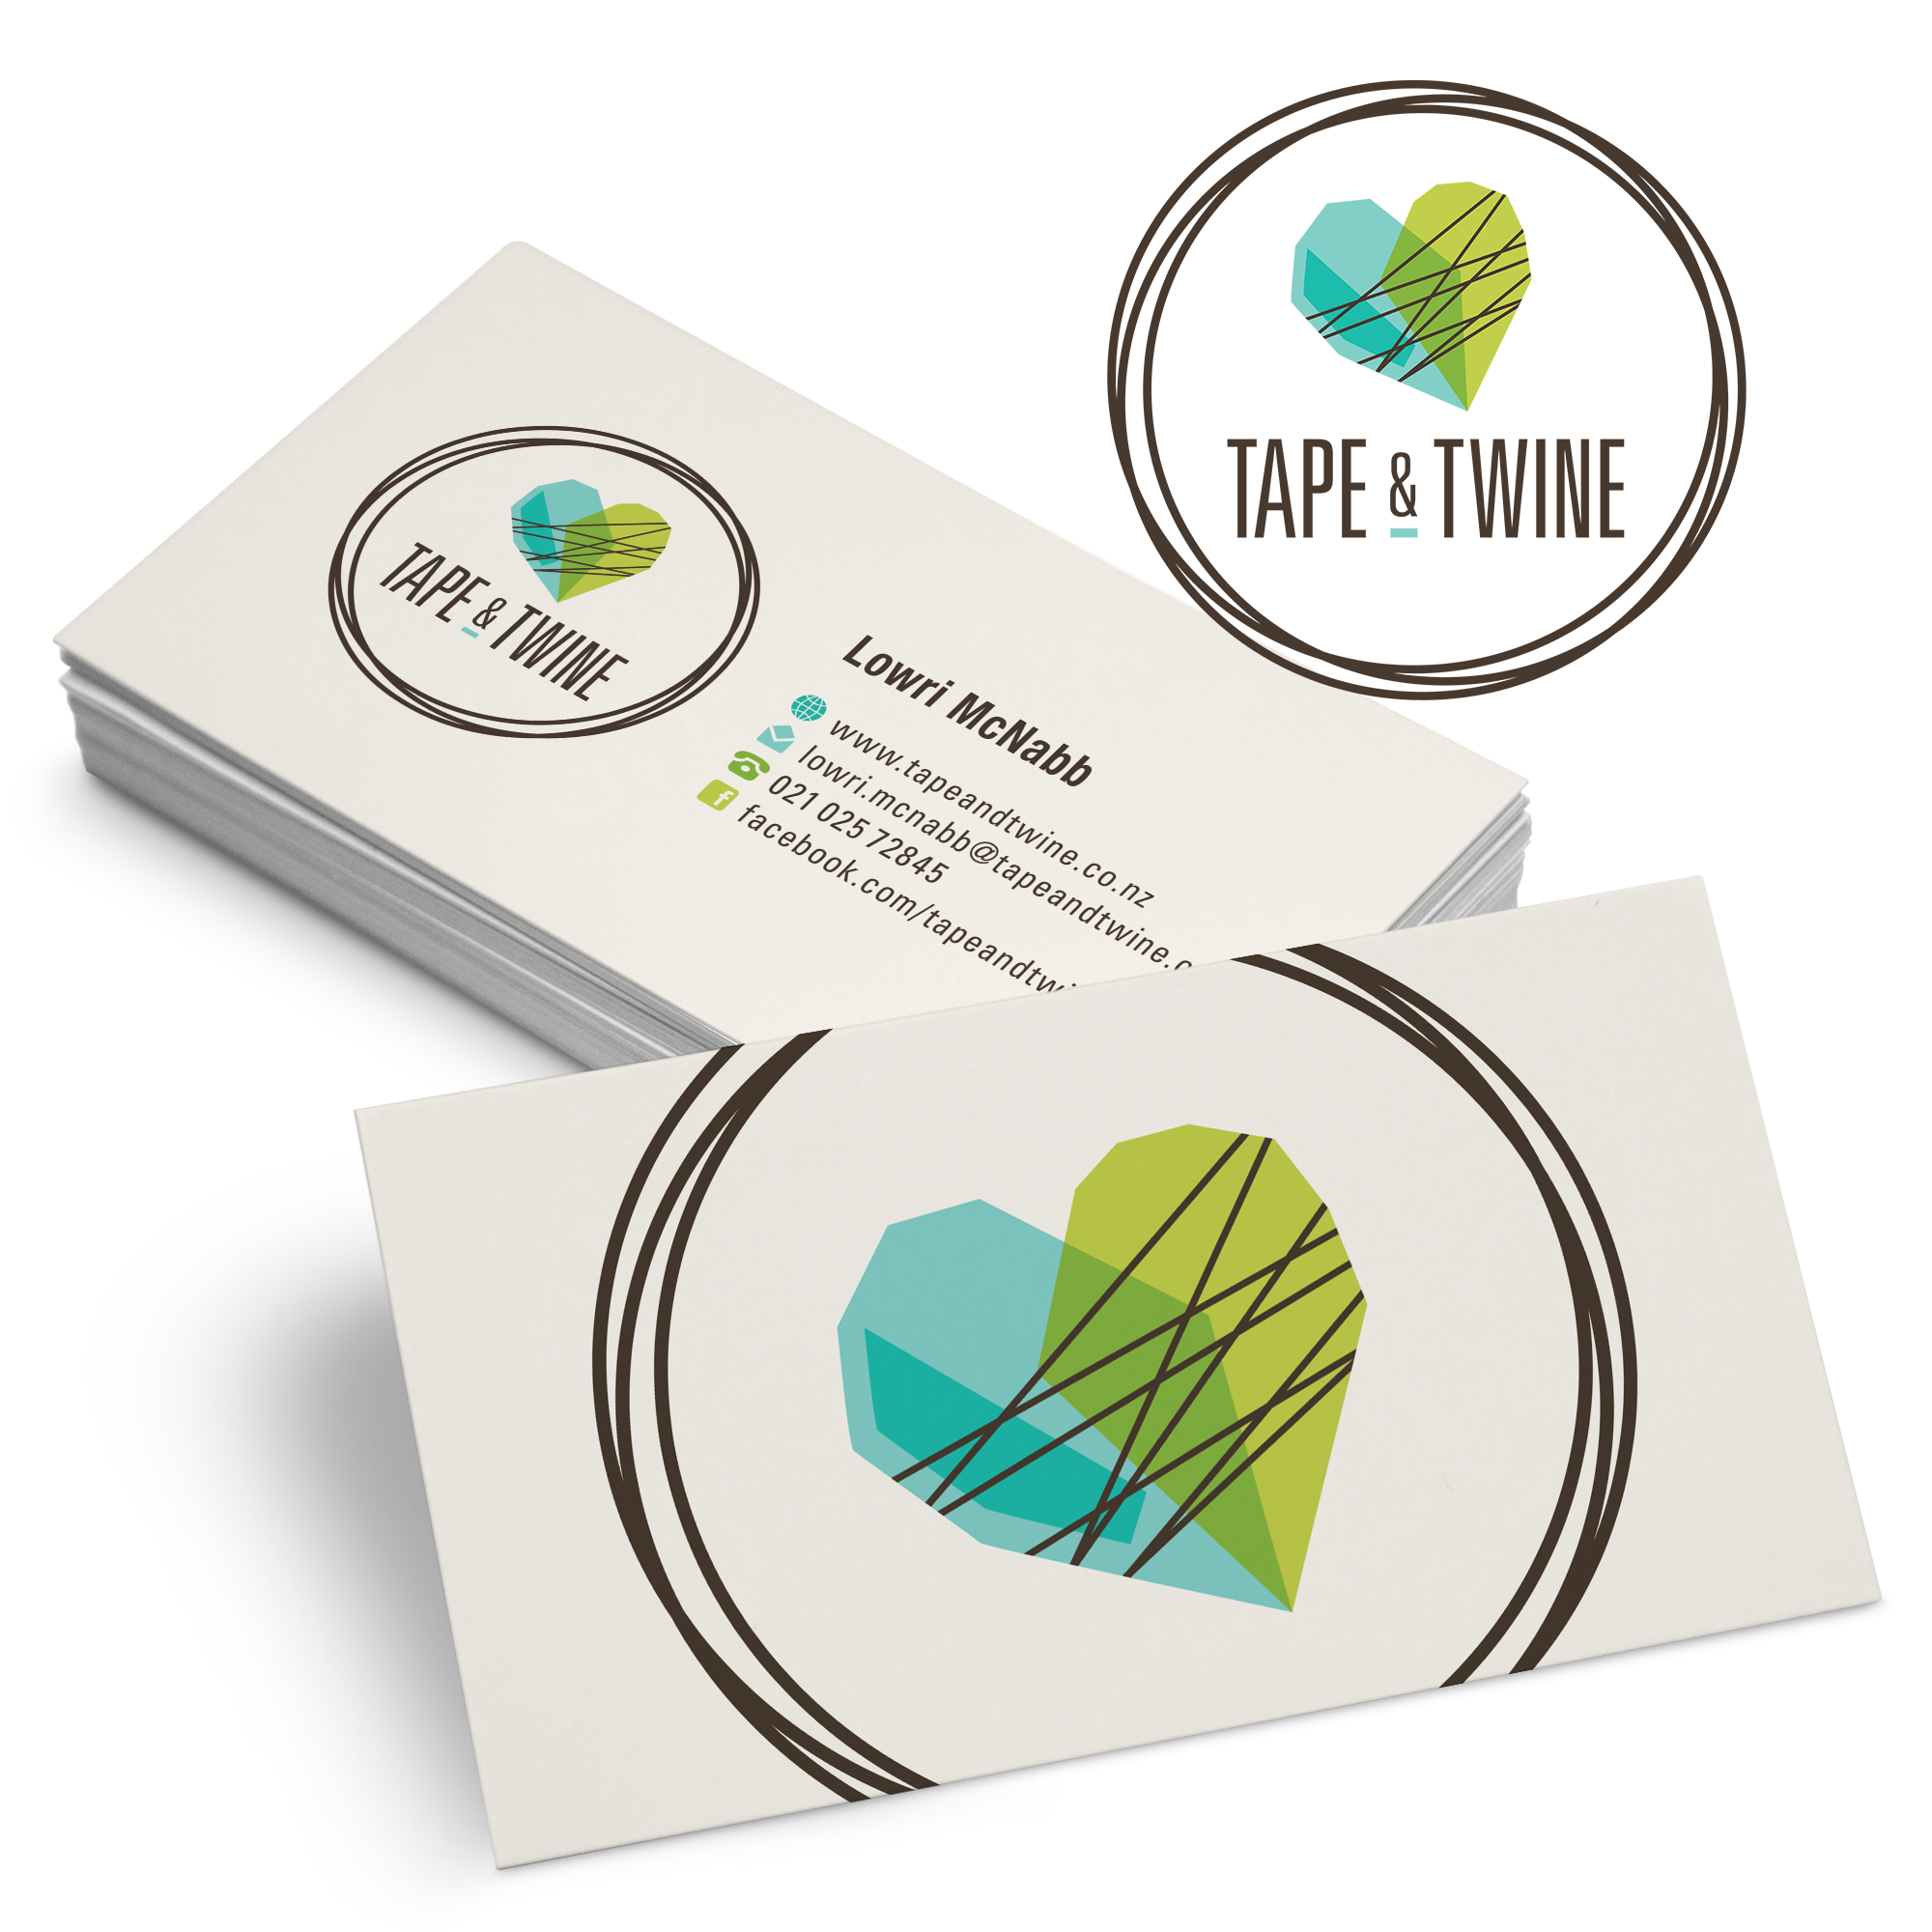 Business card logos get a custom logo for business cards 99designs logo business card design by pecas reheart Gallery